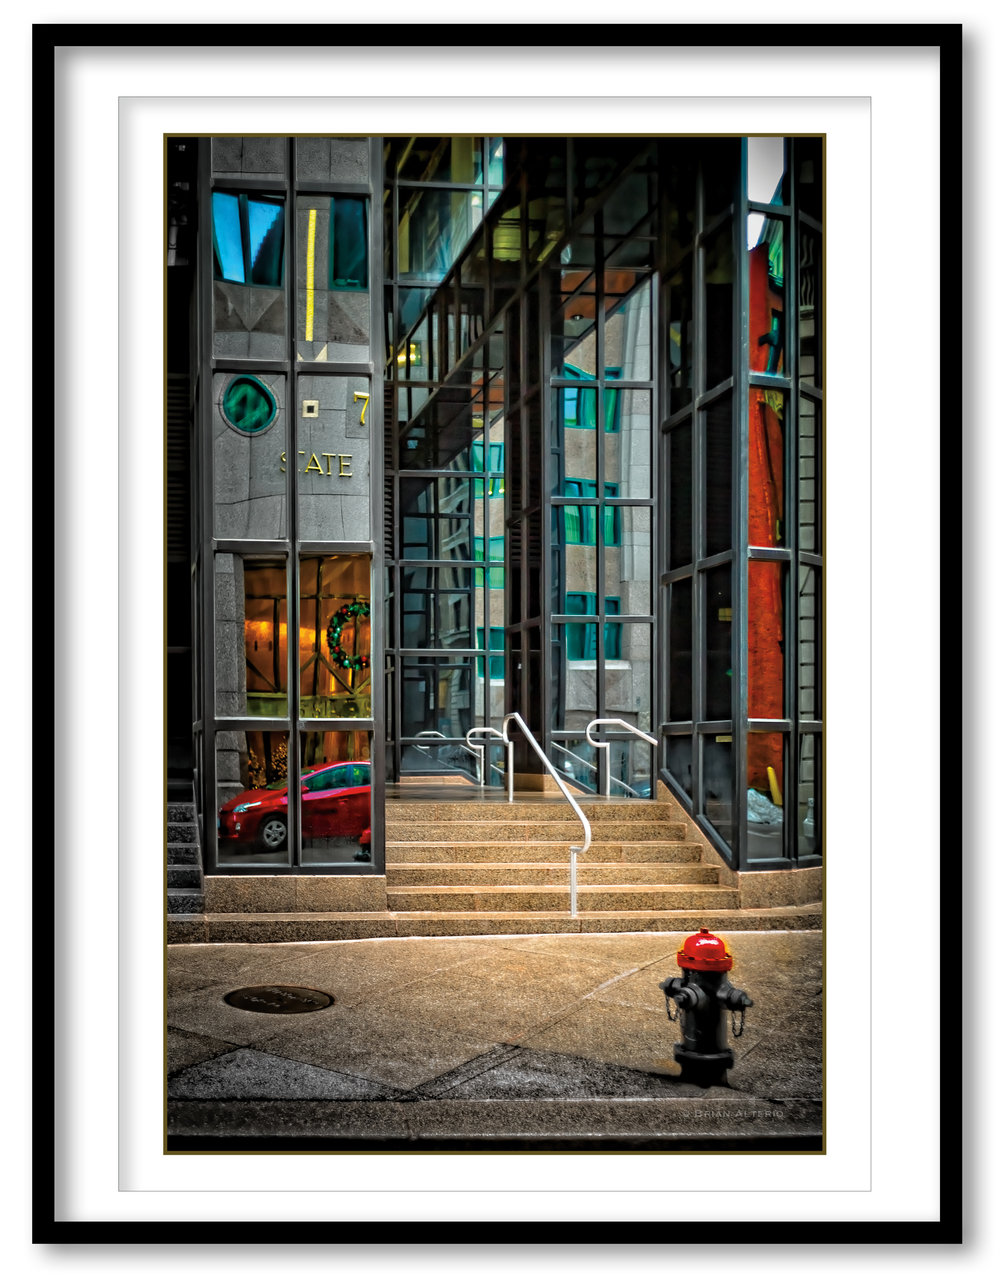 State Street, Boston #3 - 12.19.16- Framed.jpg